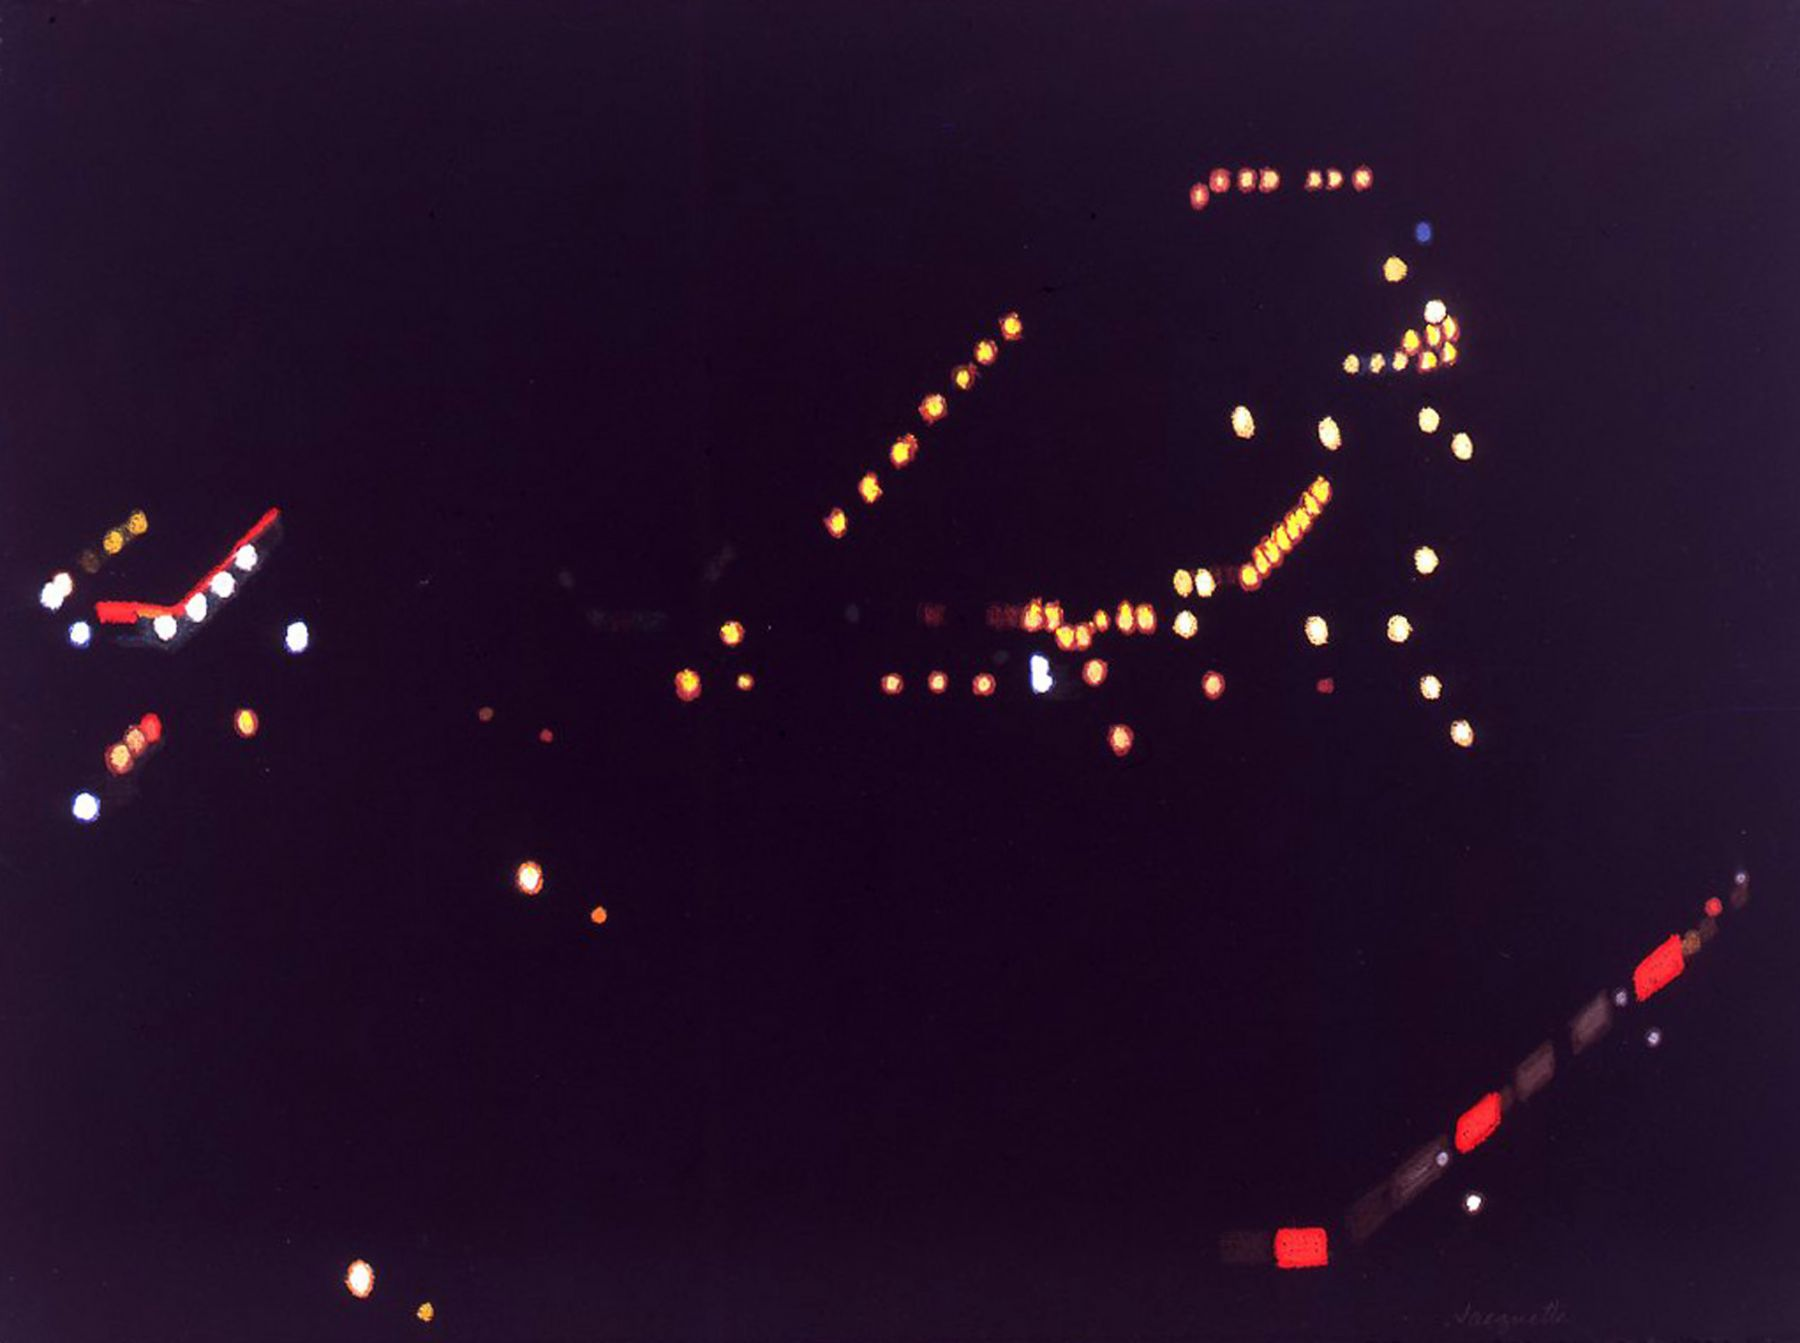 Maine Night Lights A (from Helicopter), 2007, Pastel on paper